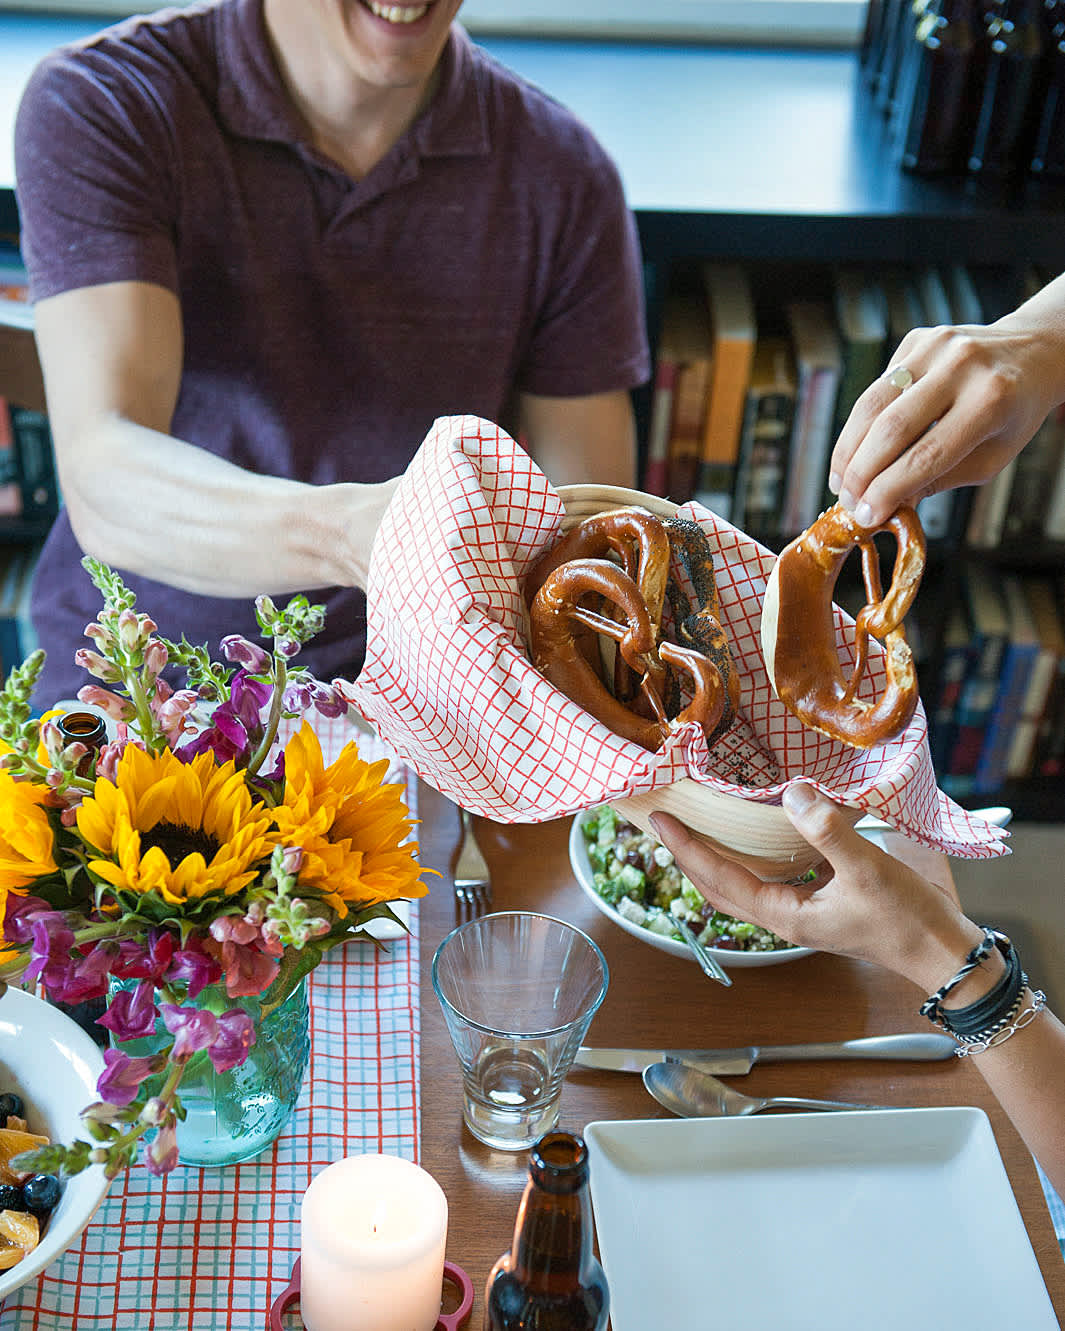 When (And Why) Not to DIY: A Tip from a Recovering Dinner Party Maniac